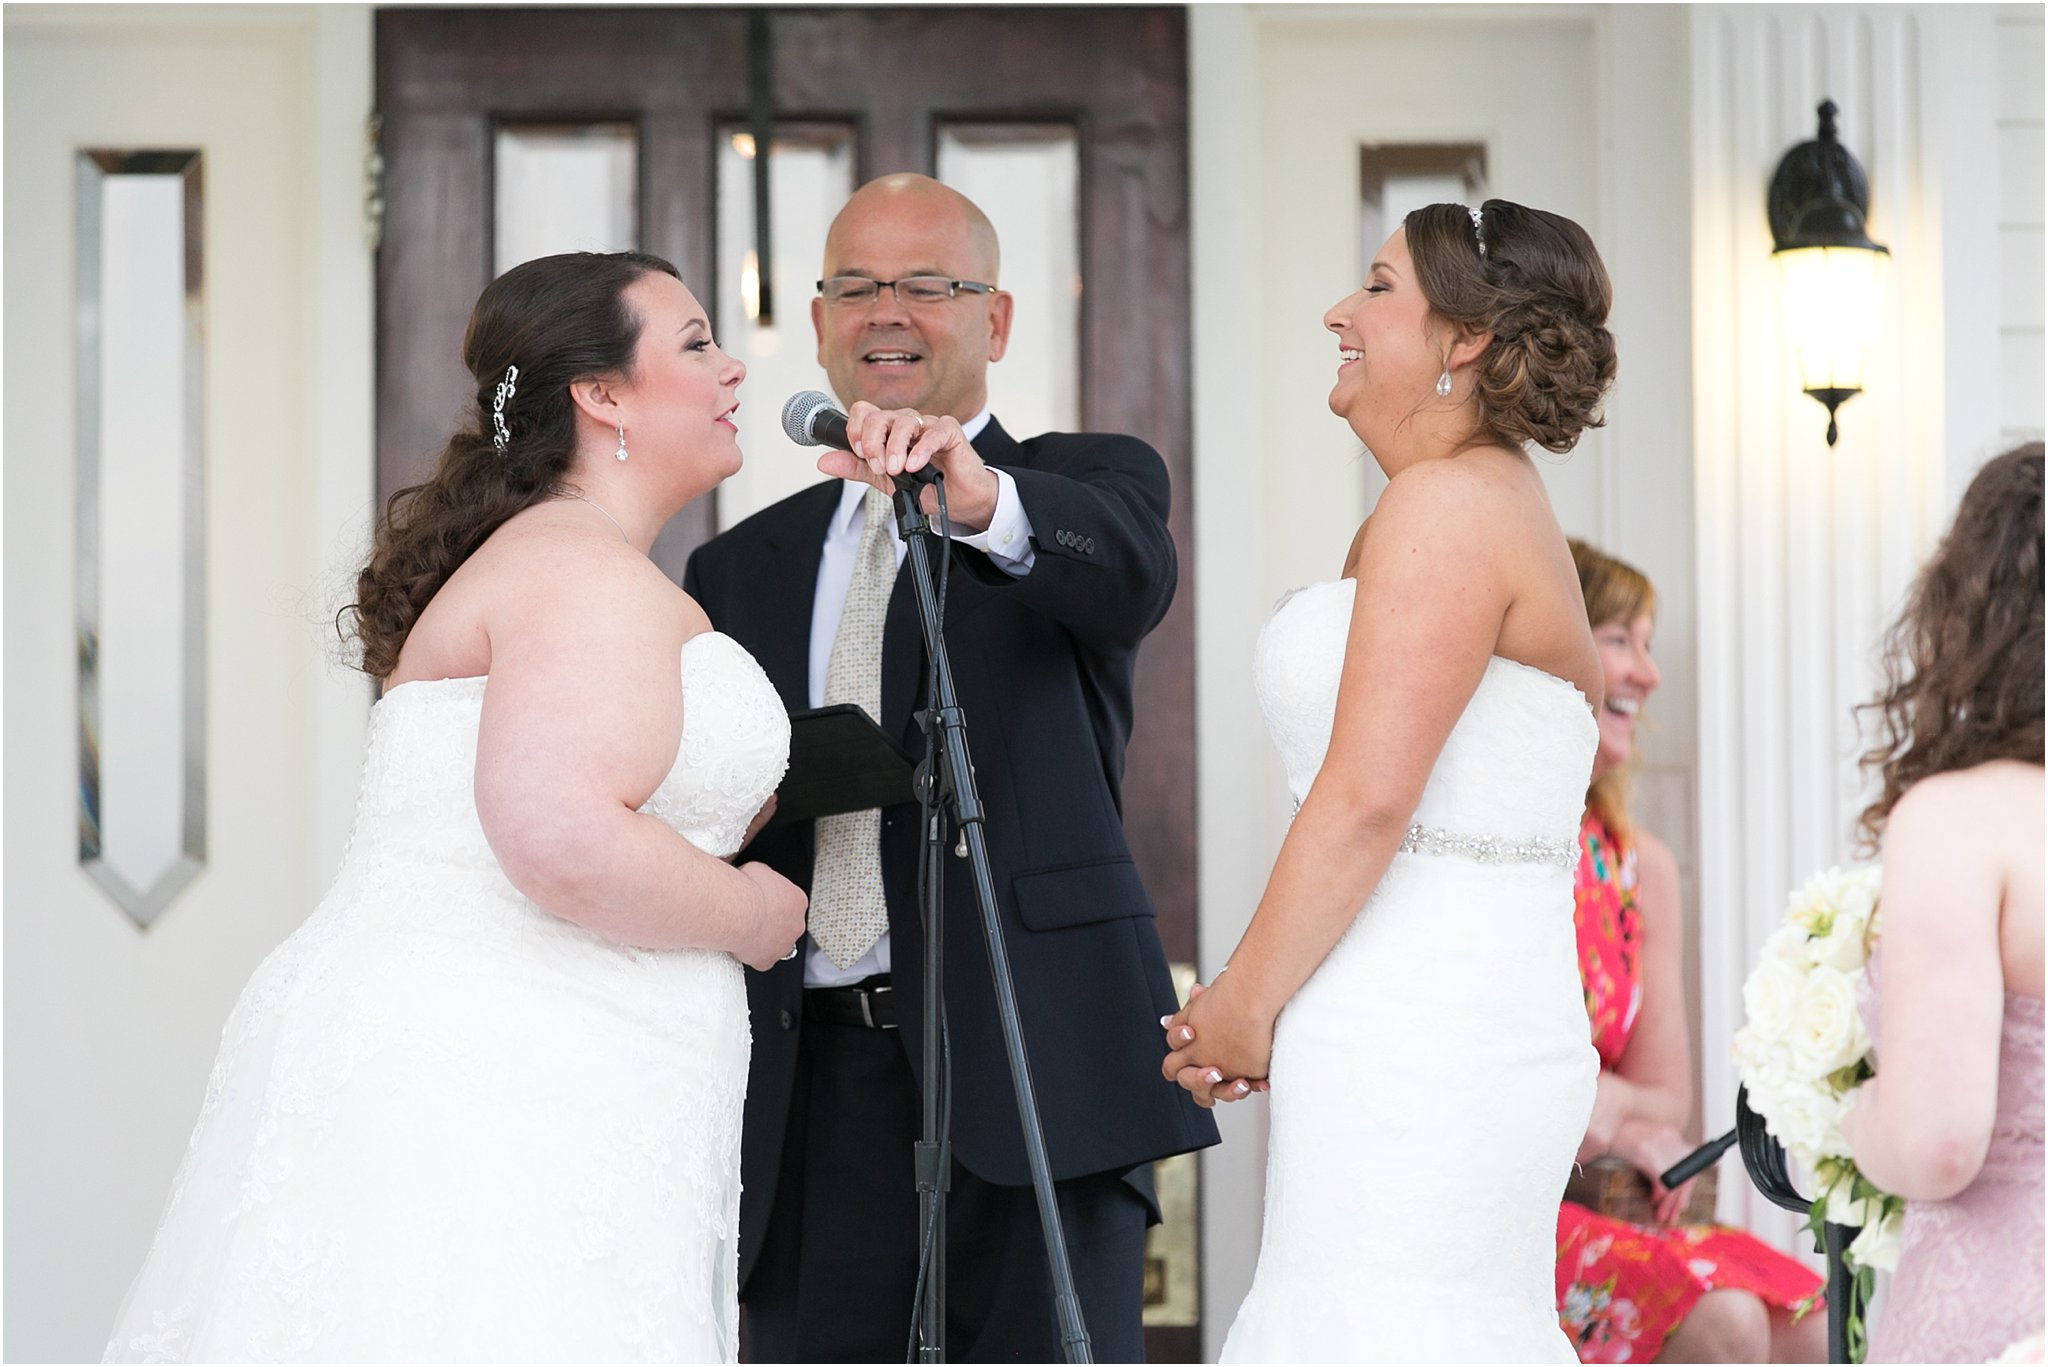 jessica_ryan_photography_wedding_suffolk_obici_house_wedding_0425